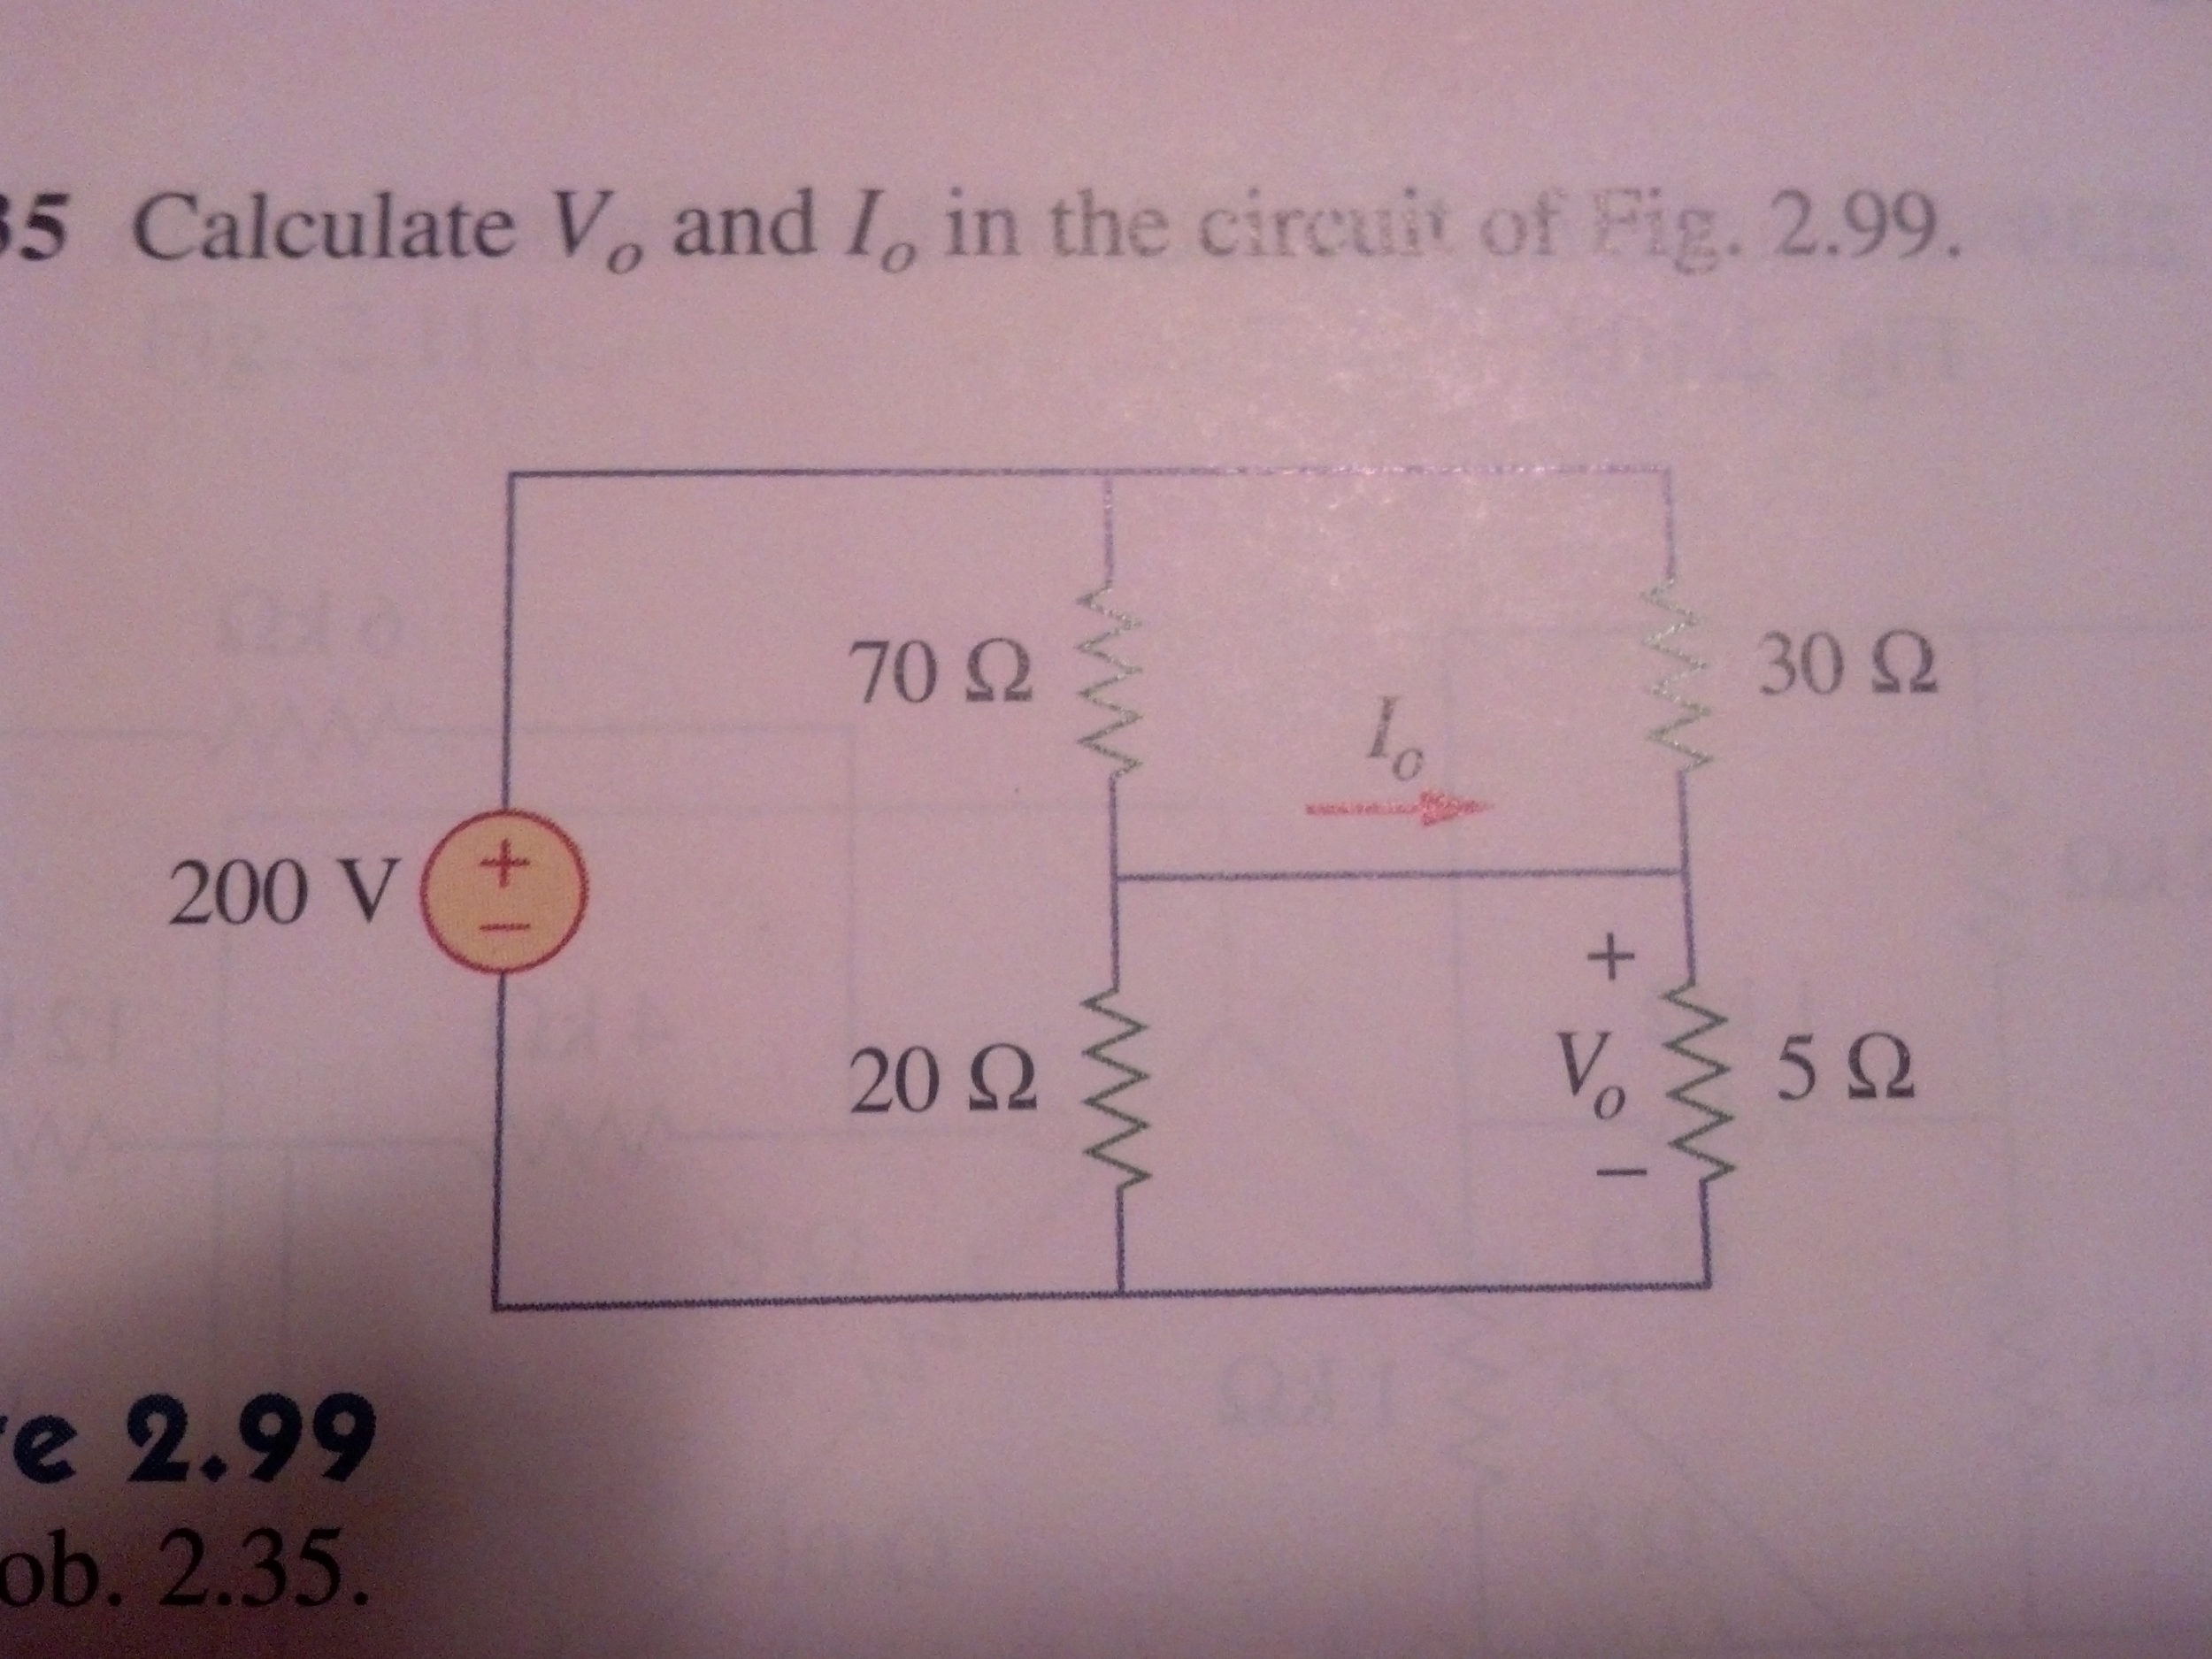 Calculate Vo and Io in the circuit of Fig. 2.99